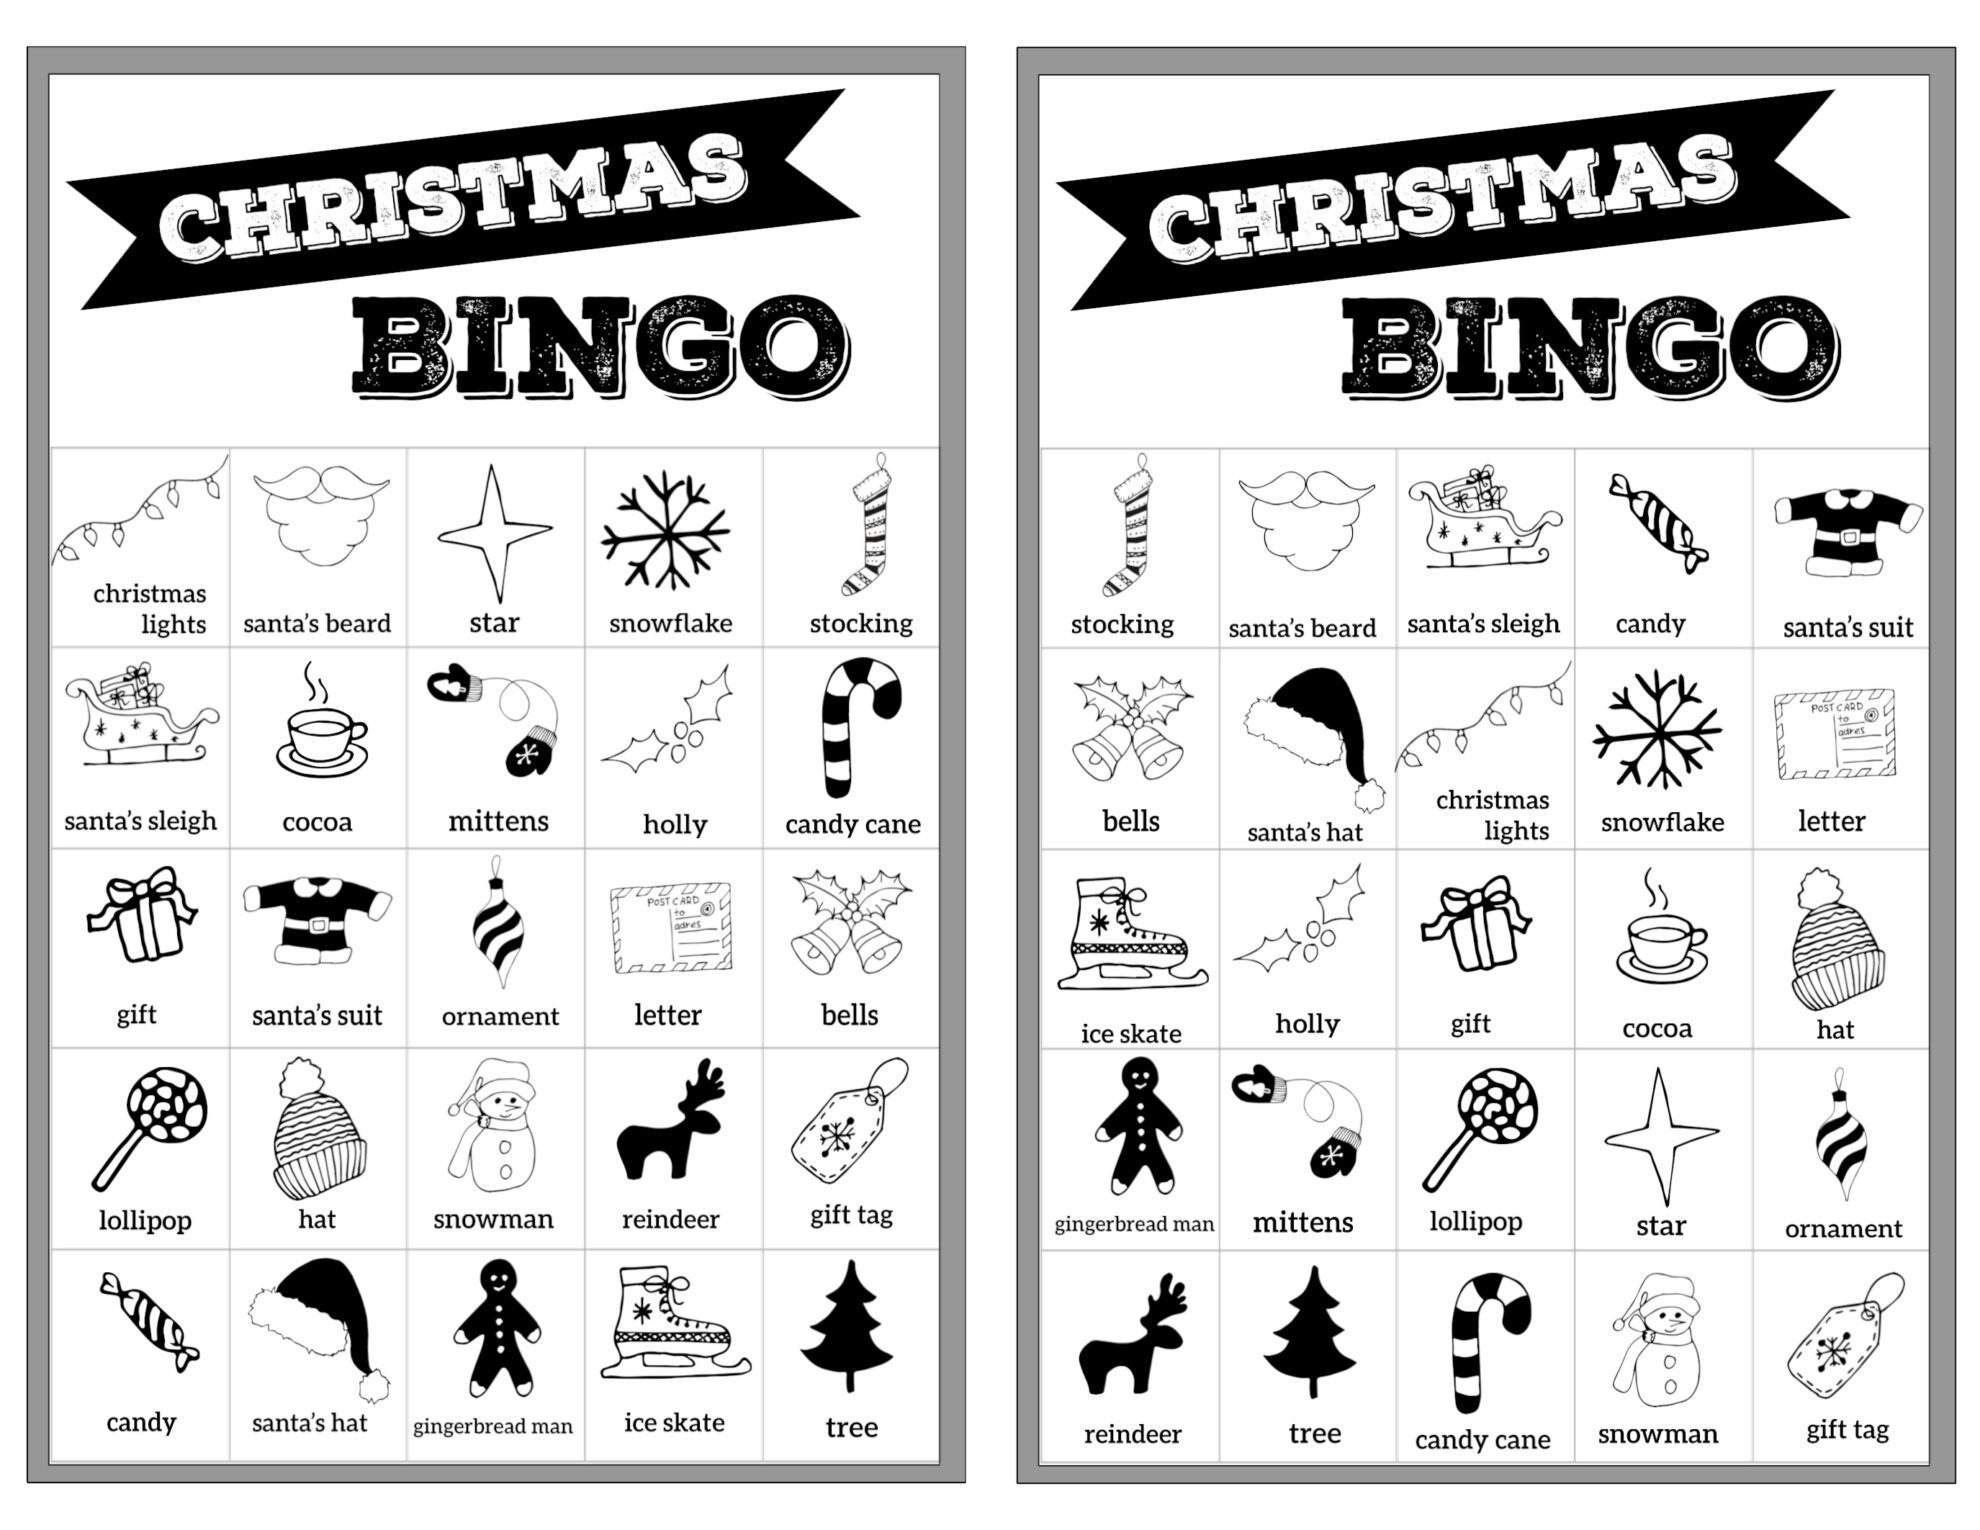 Free Christmas Bingo Printable Cards - Paper Trail Design - Free Printable Christmas Bingo